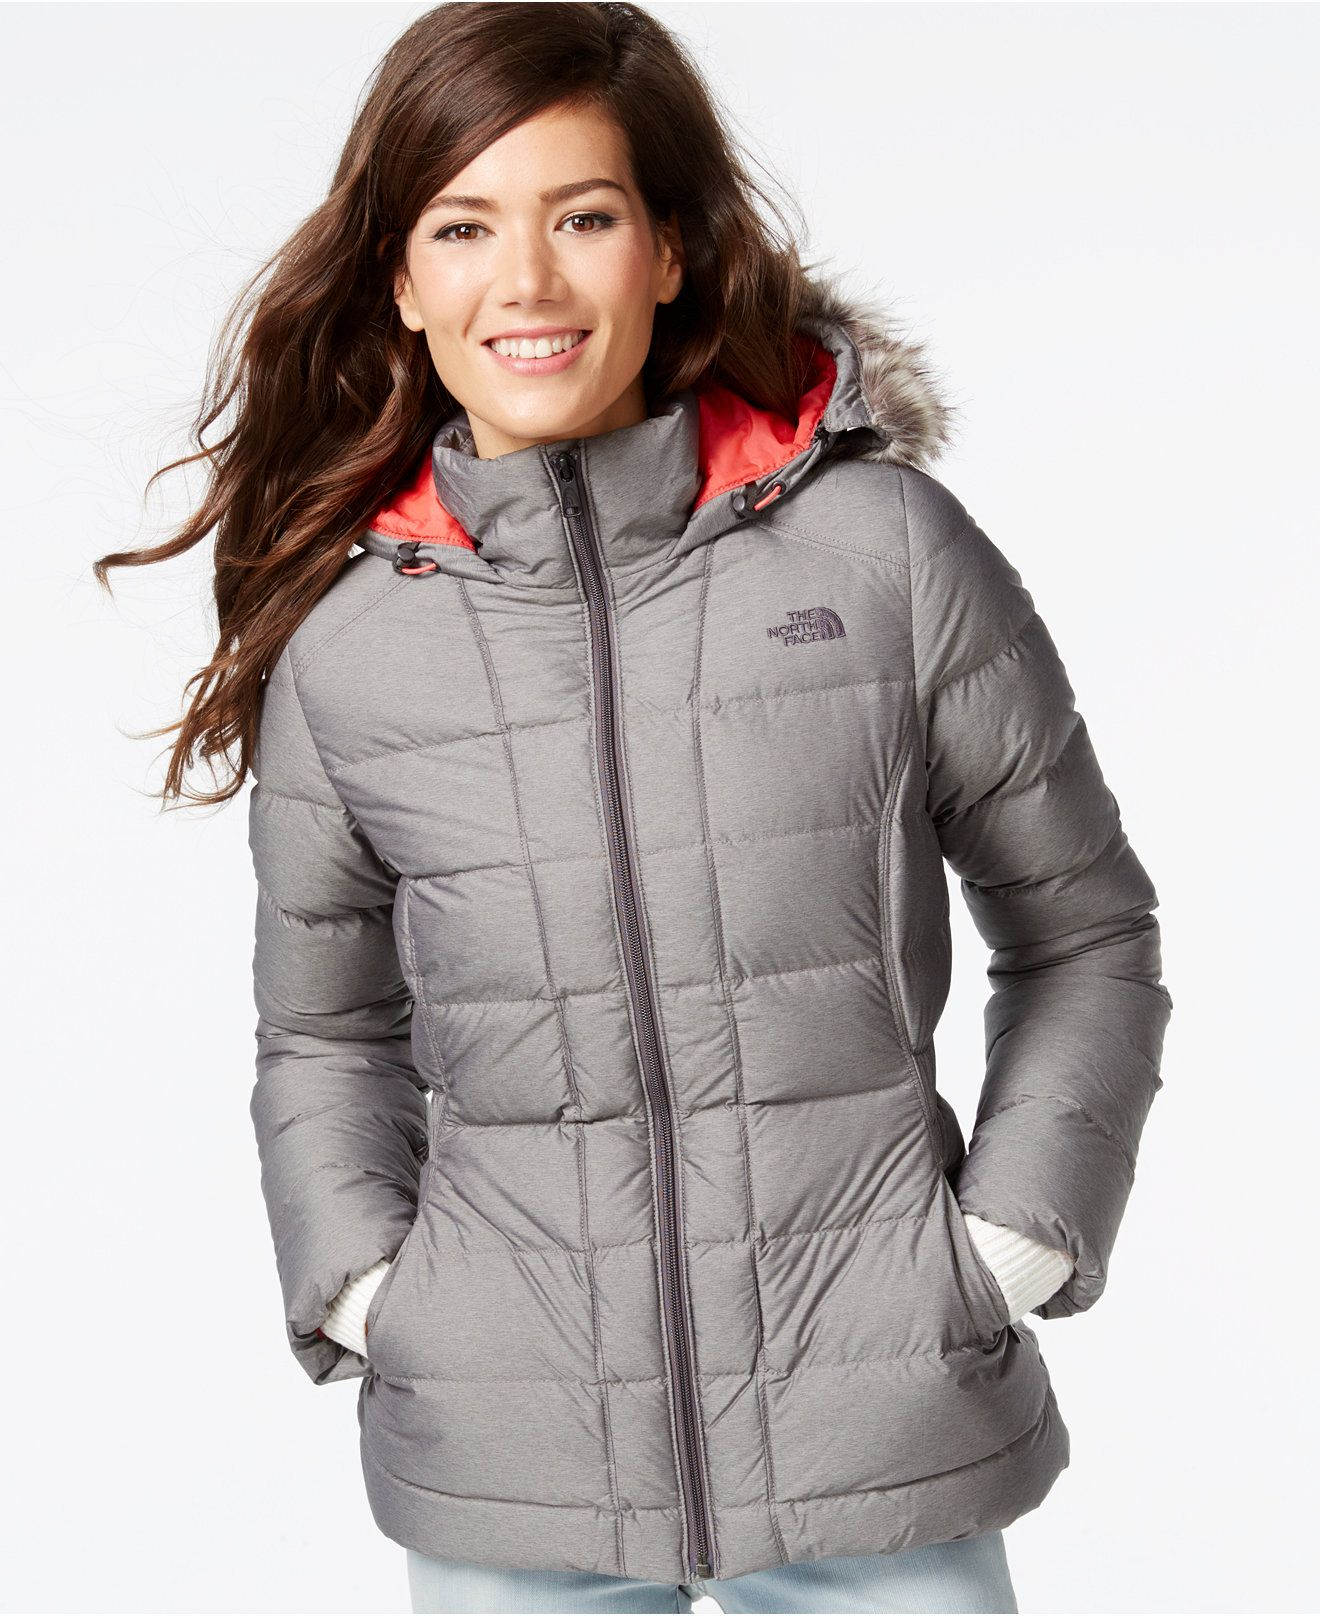 The North Face Gotham Full Zip Down Jacket Juniors Jackets Vests Macy S Blazer Jackets For Women Jackets Juniors Jackets